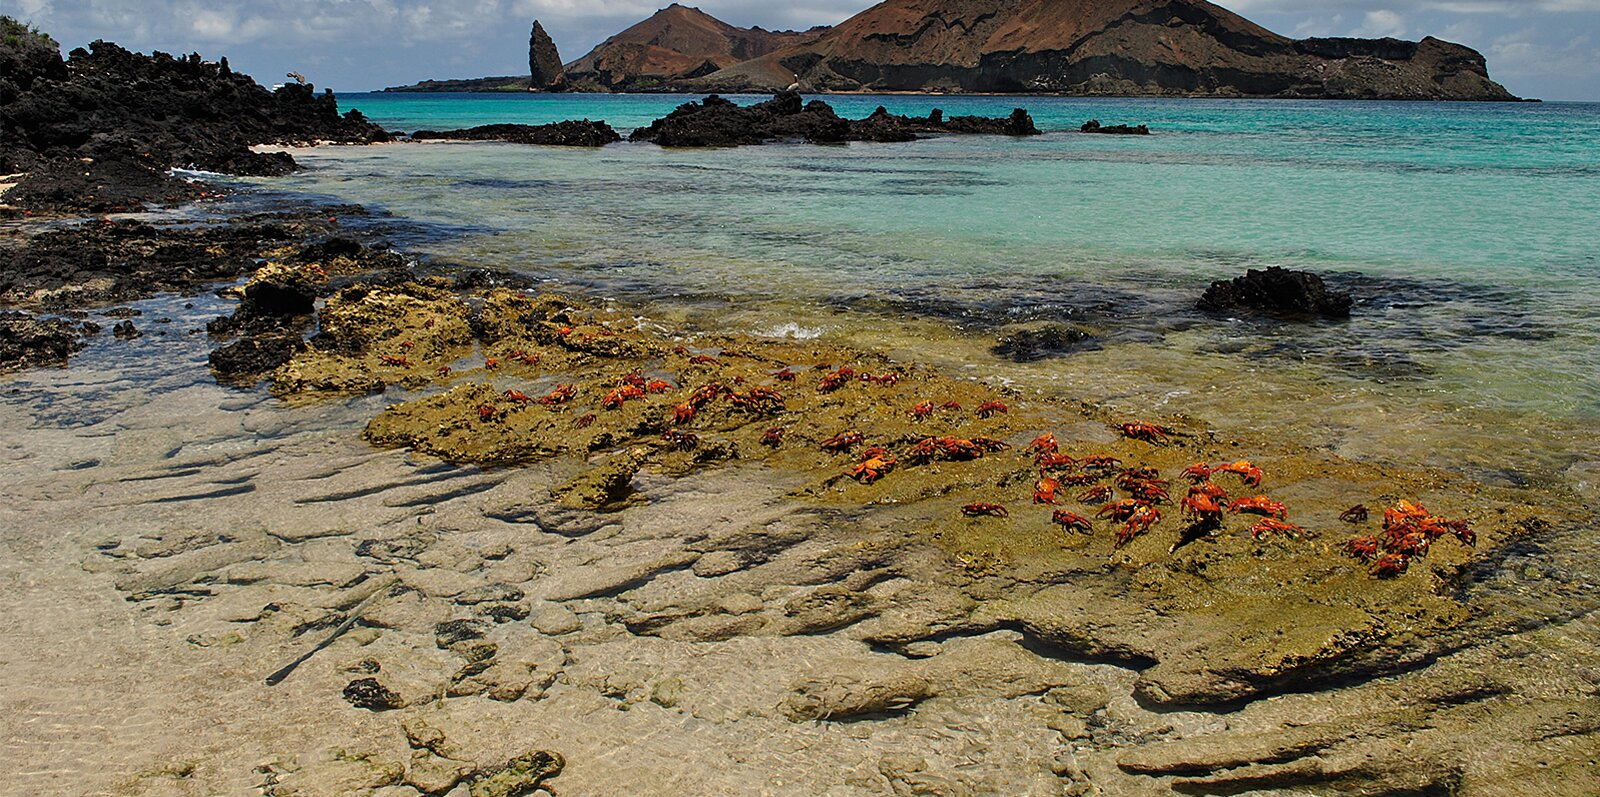 Galapagos Islands Home to World's First Green Airport